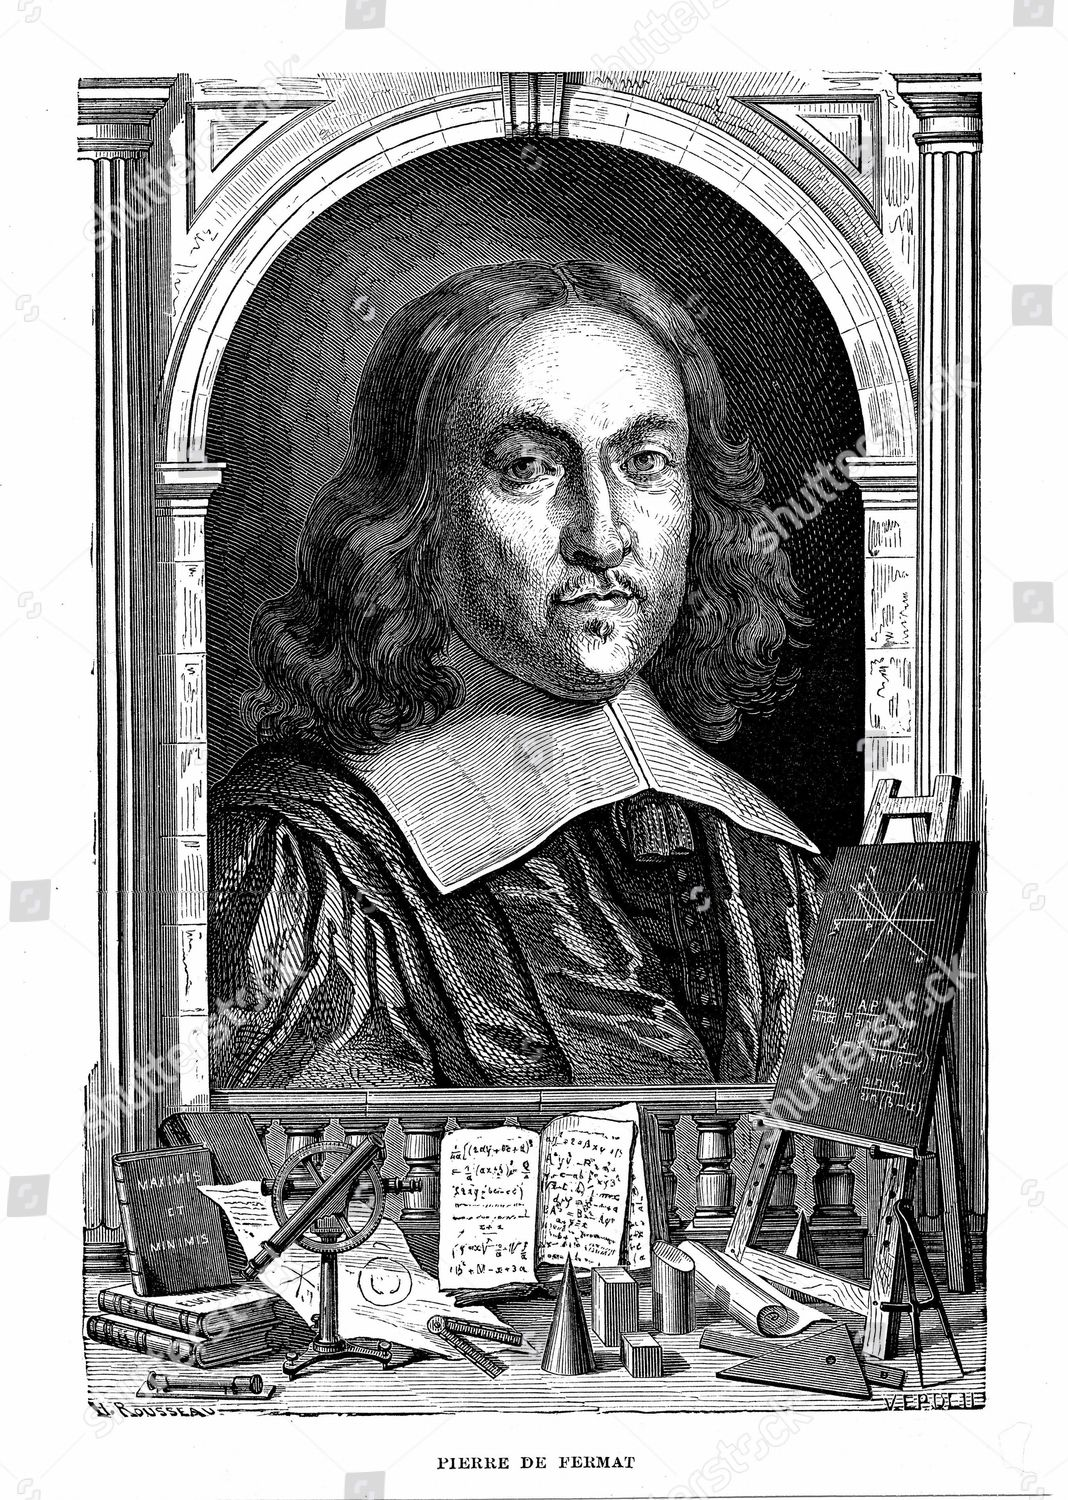 great mathematician pierre de fermat Social and professional position: pierre de fermat was a great french mathematician a jurist by profession, he was a lawyer at the parlement of toulouse, france, and an amateur mathematician a jurist by profession, he was a lawyer at the parlement of toulouse, france, and an amateur mathematician.